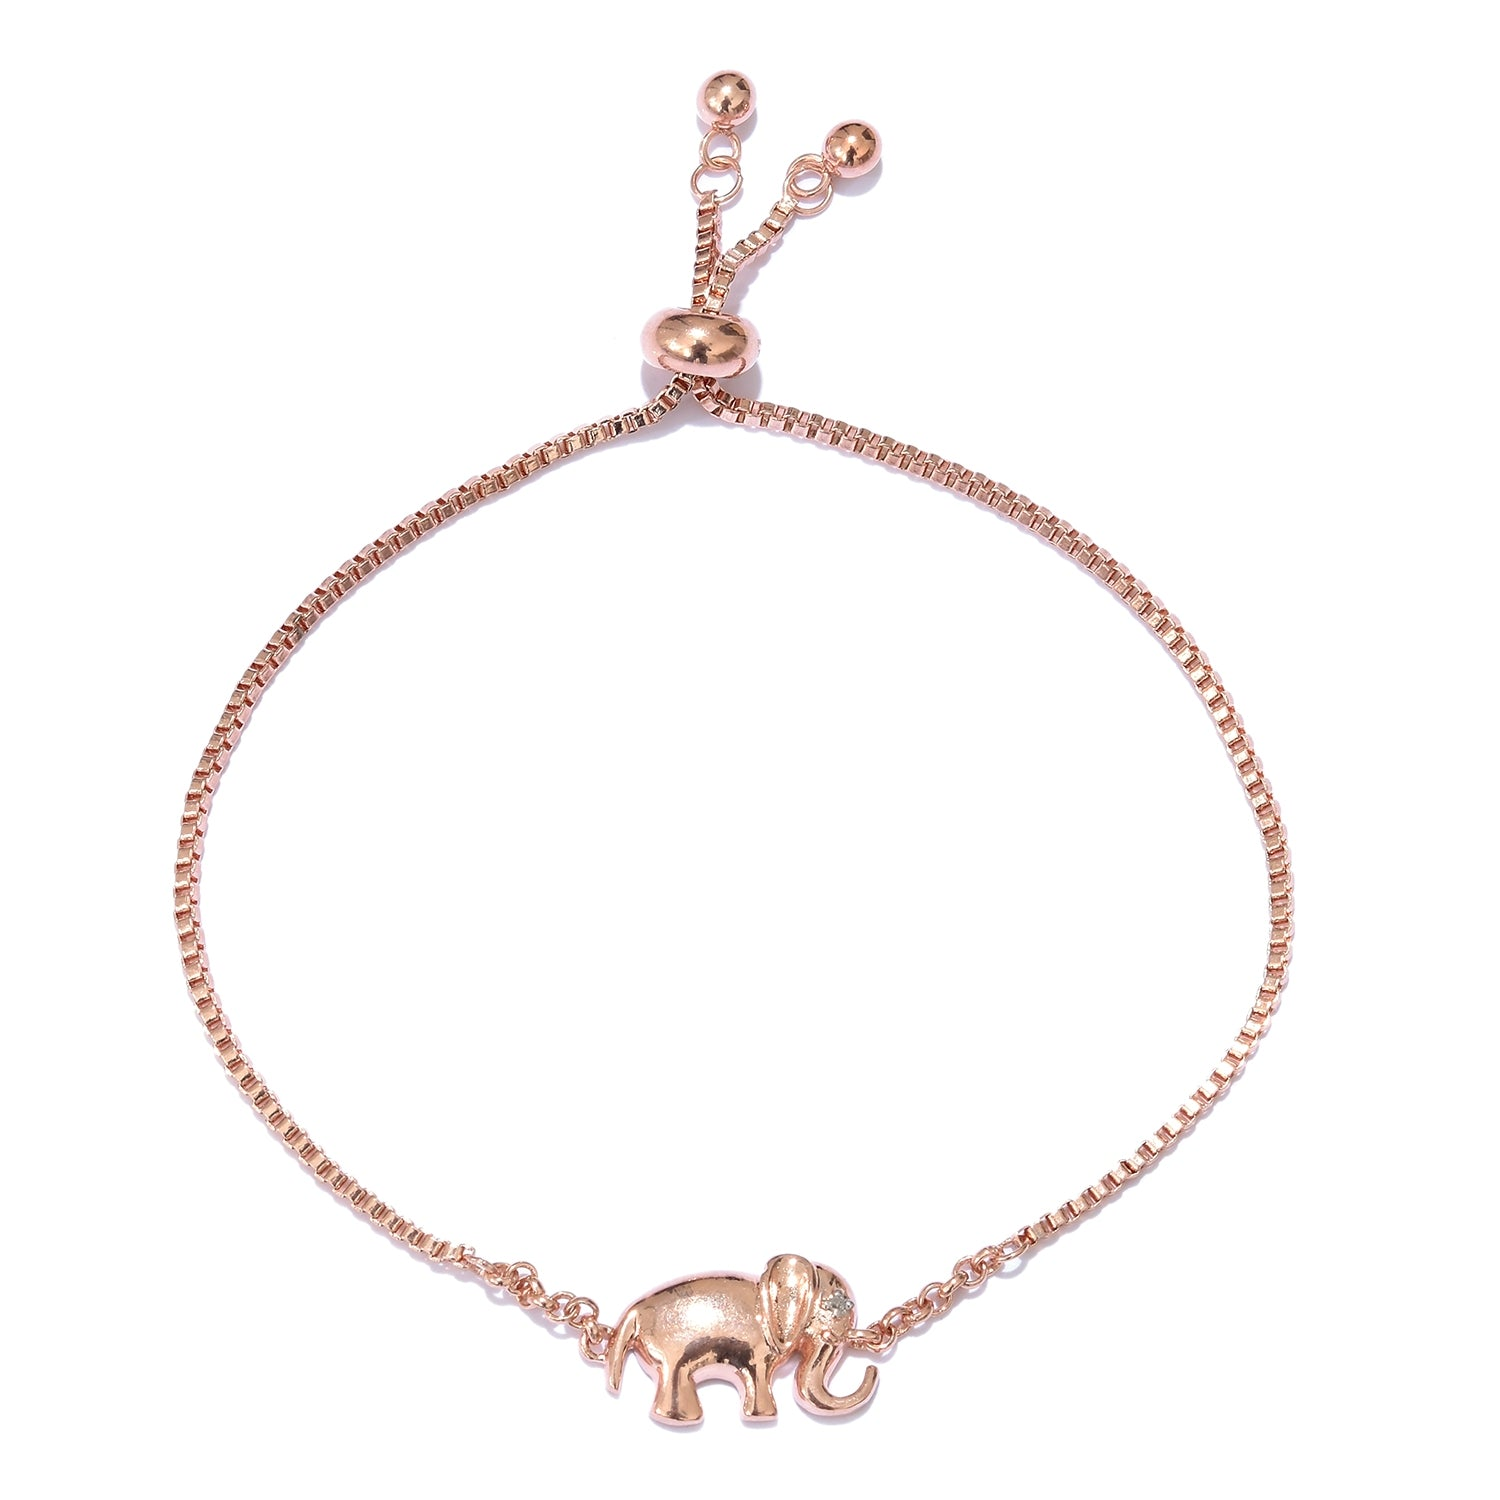 Diamond Accent Elephant Charm Bolo Bracelet in Rose Gold Over Sterling Silver - Houzz of DVA Boutique